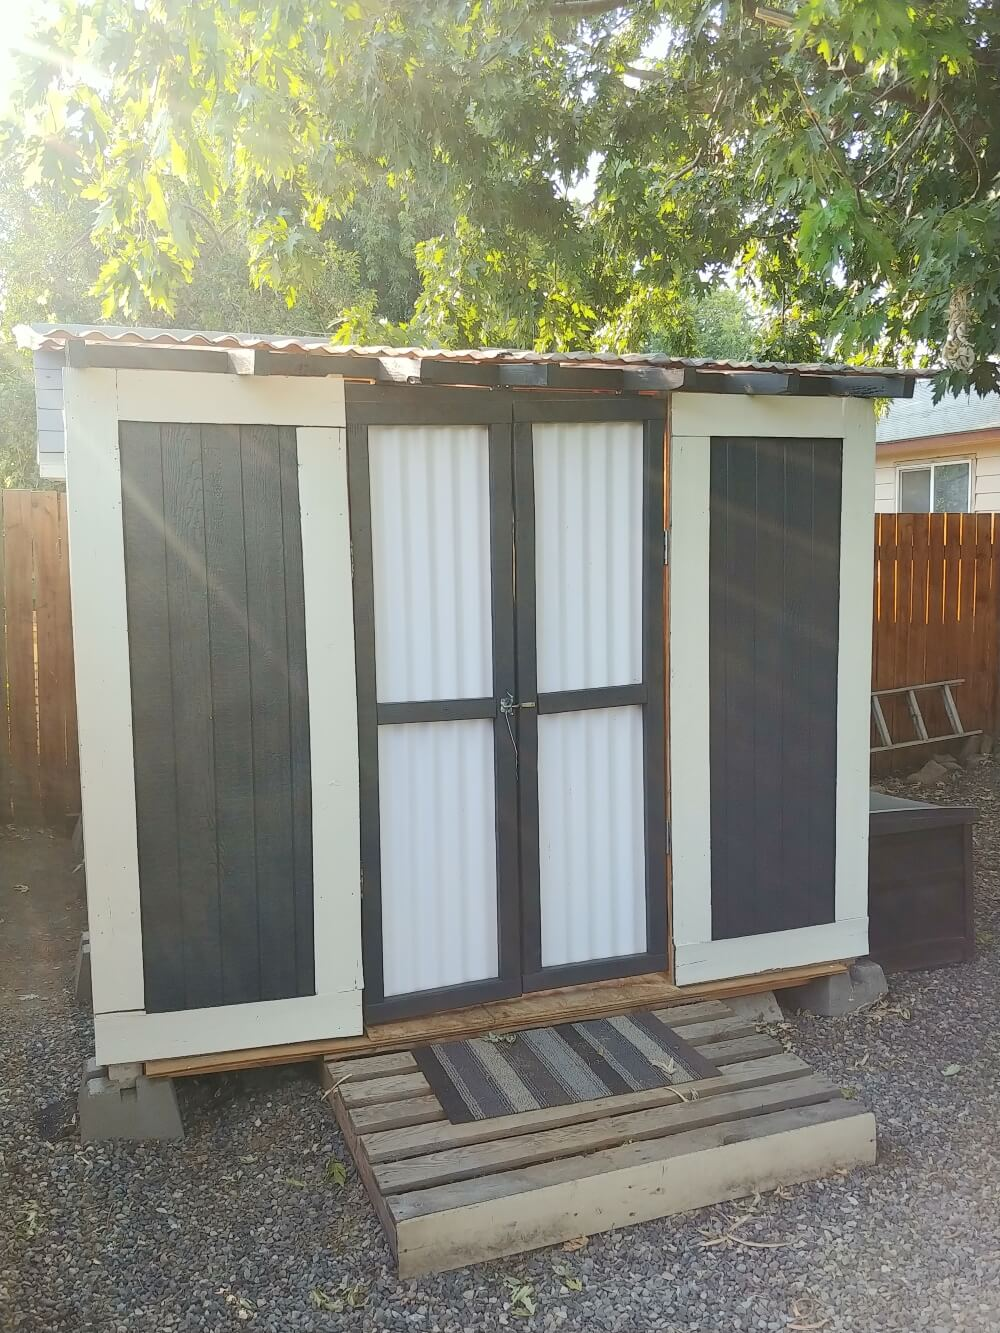 Building a Backyard Shed - Former Wood Storage Area